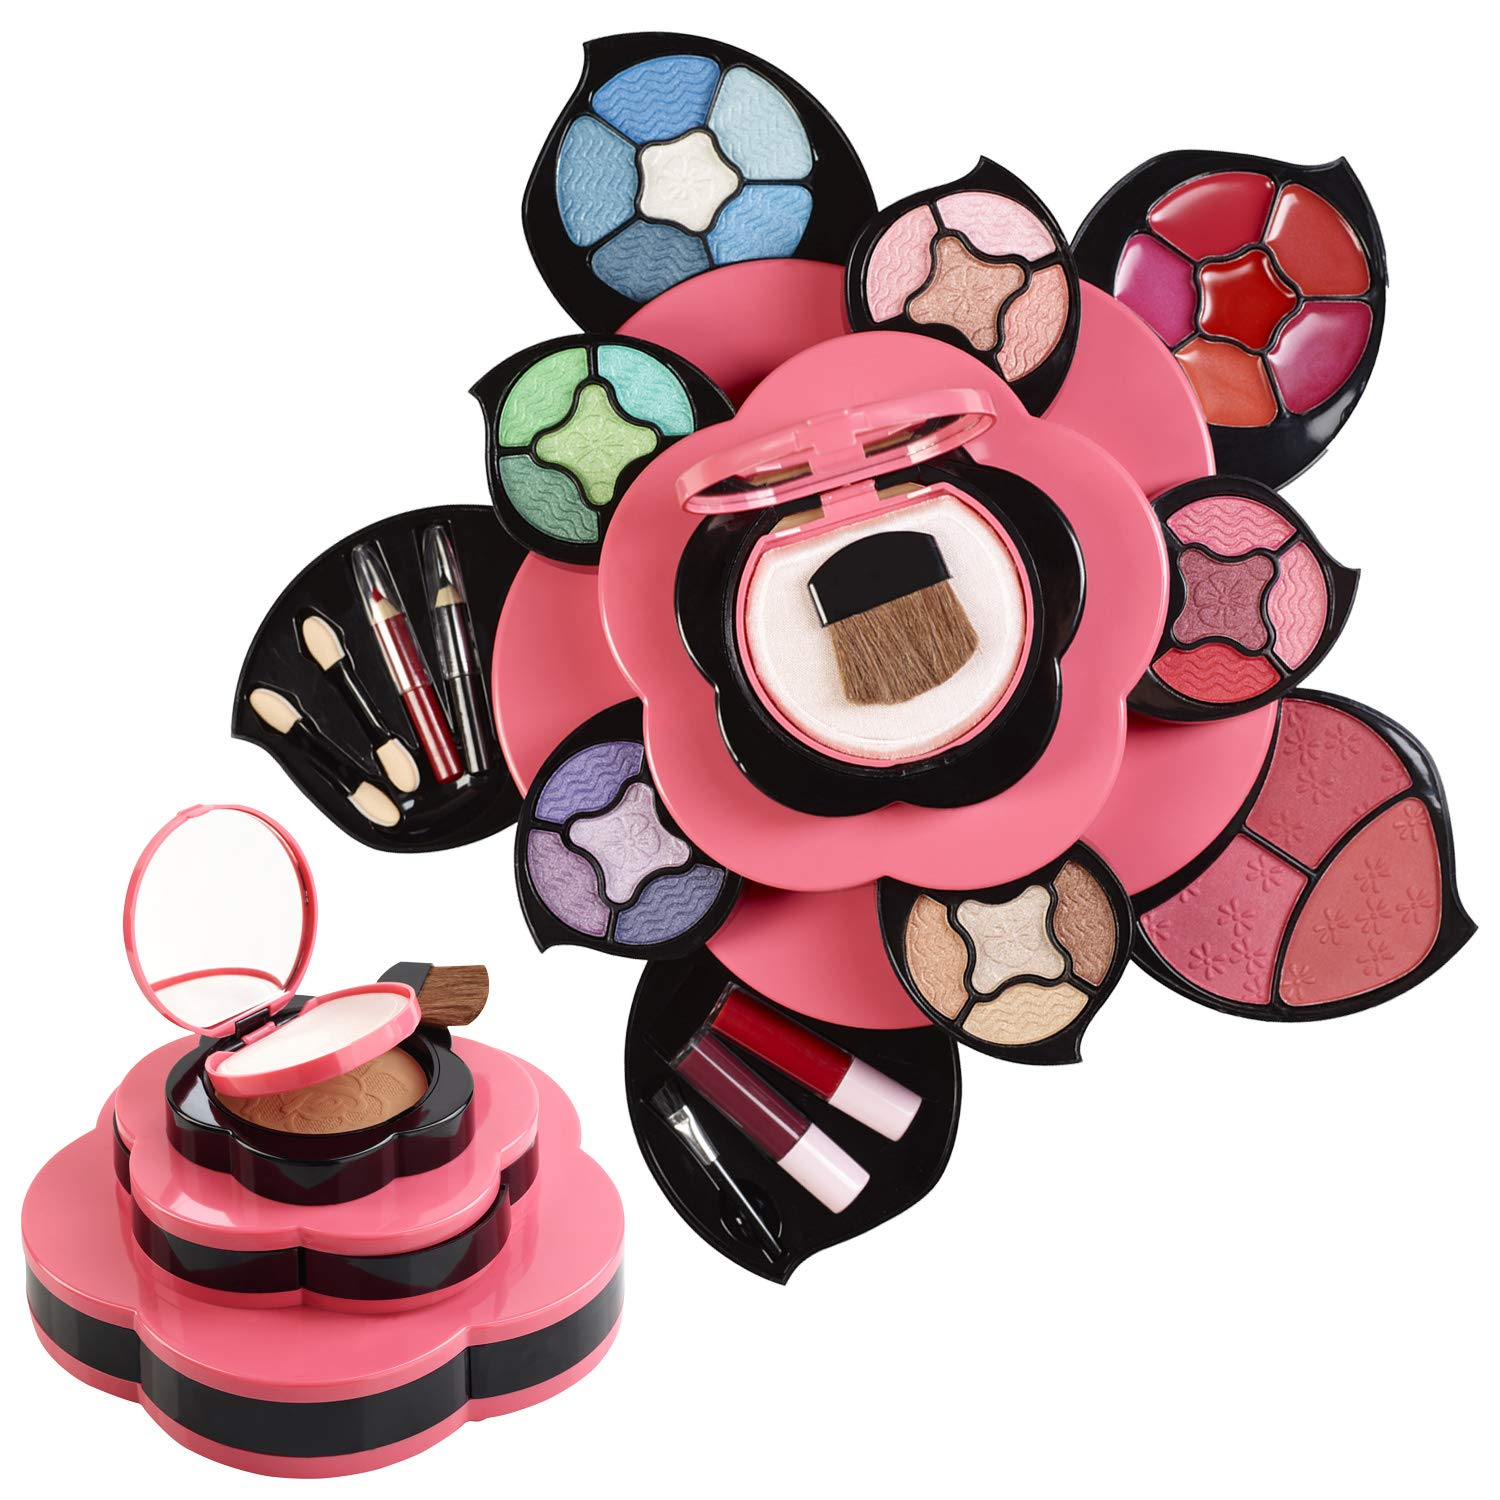 Makeup Kits for Teens - Flower Make Up Pallete Gift Set for Teen Girls and Women - Petals Expand to 3 Tiers -Variety Shade Array - Full Starter Kit for Beginners or Cosplay by Toysical